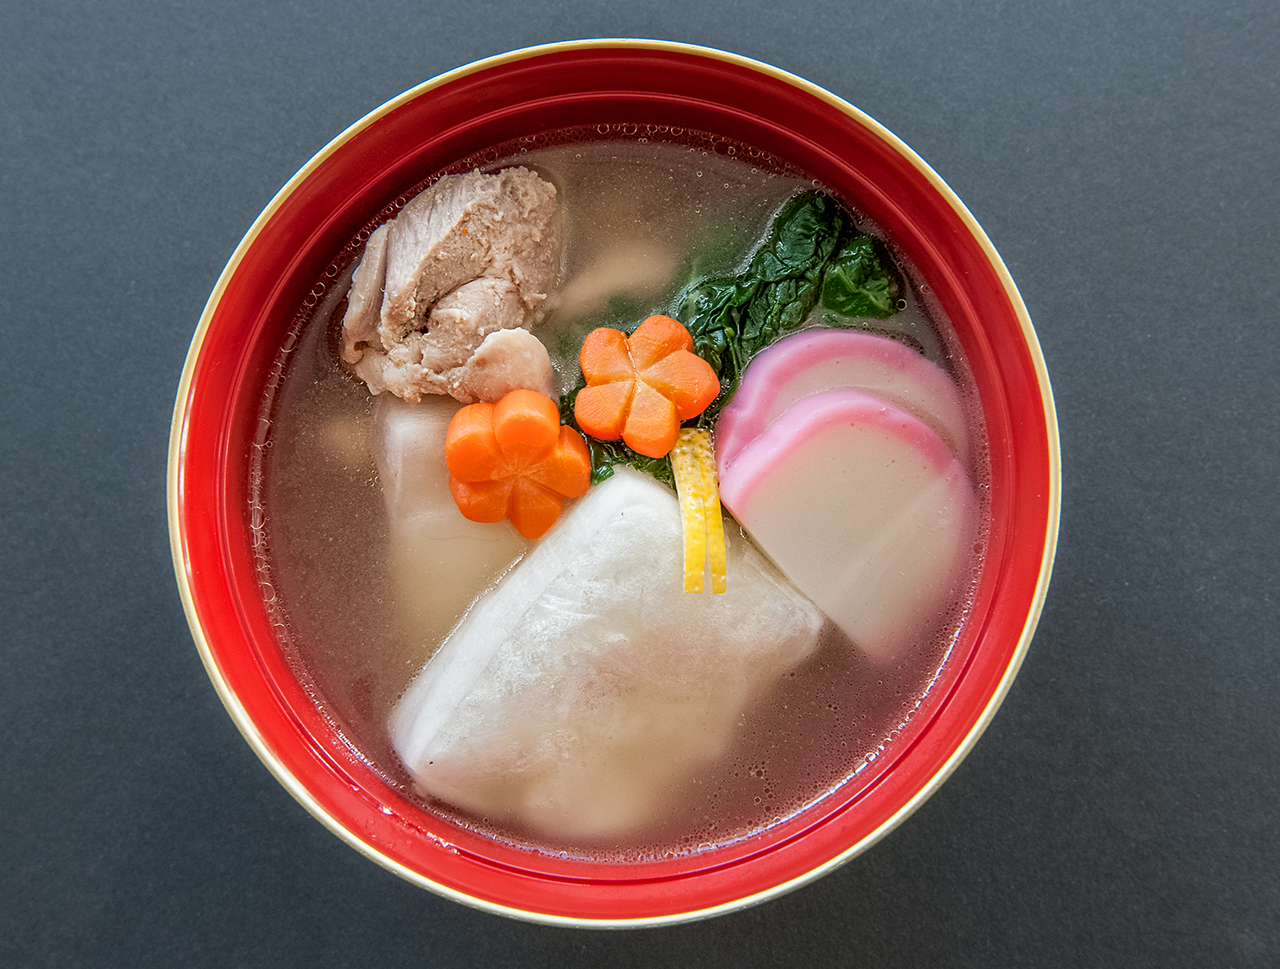 Kanto style ozoni (mochi soup) for New Years